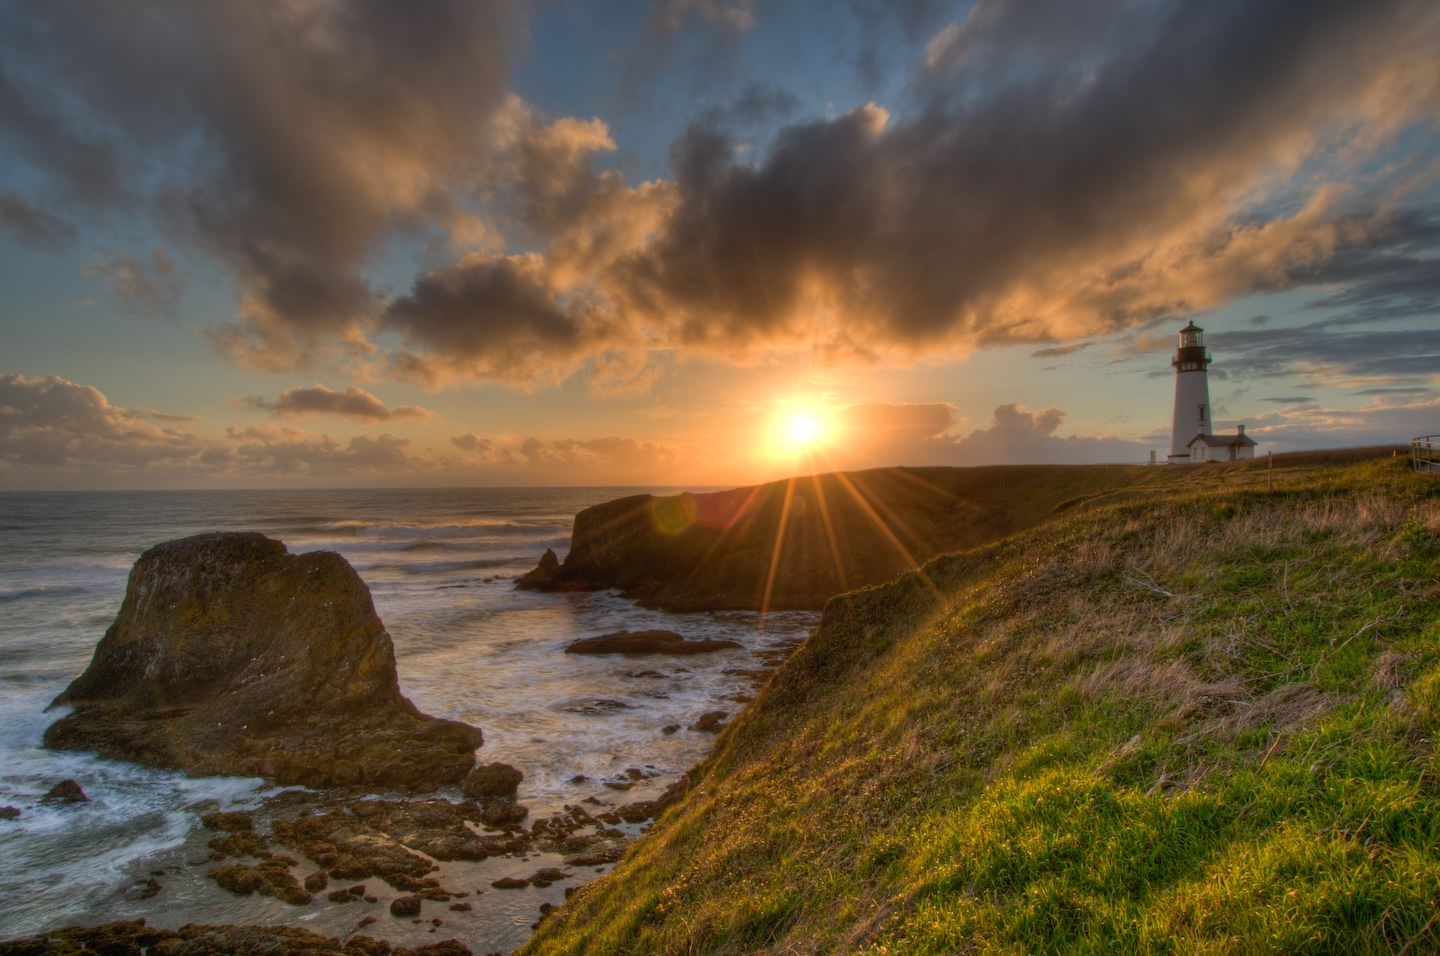 Yaquina Head Lighthouse. Photo by Chad Case, Chad Case Photography & Video, April 2008